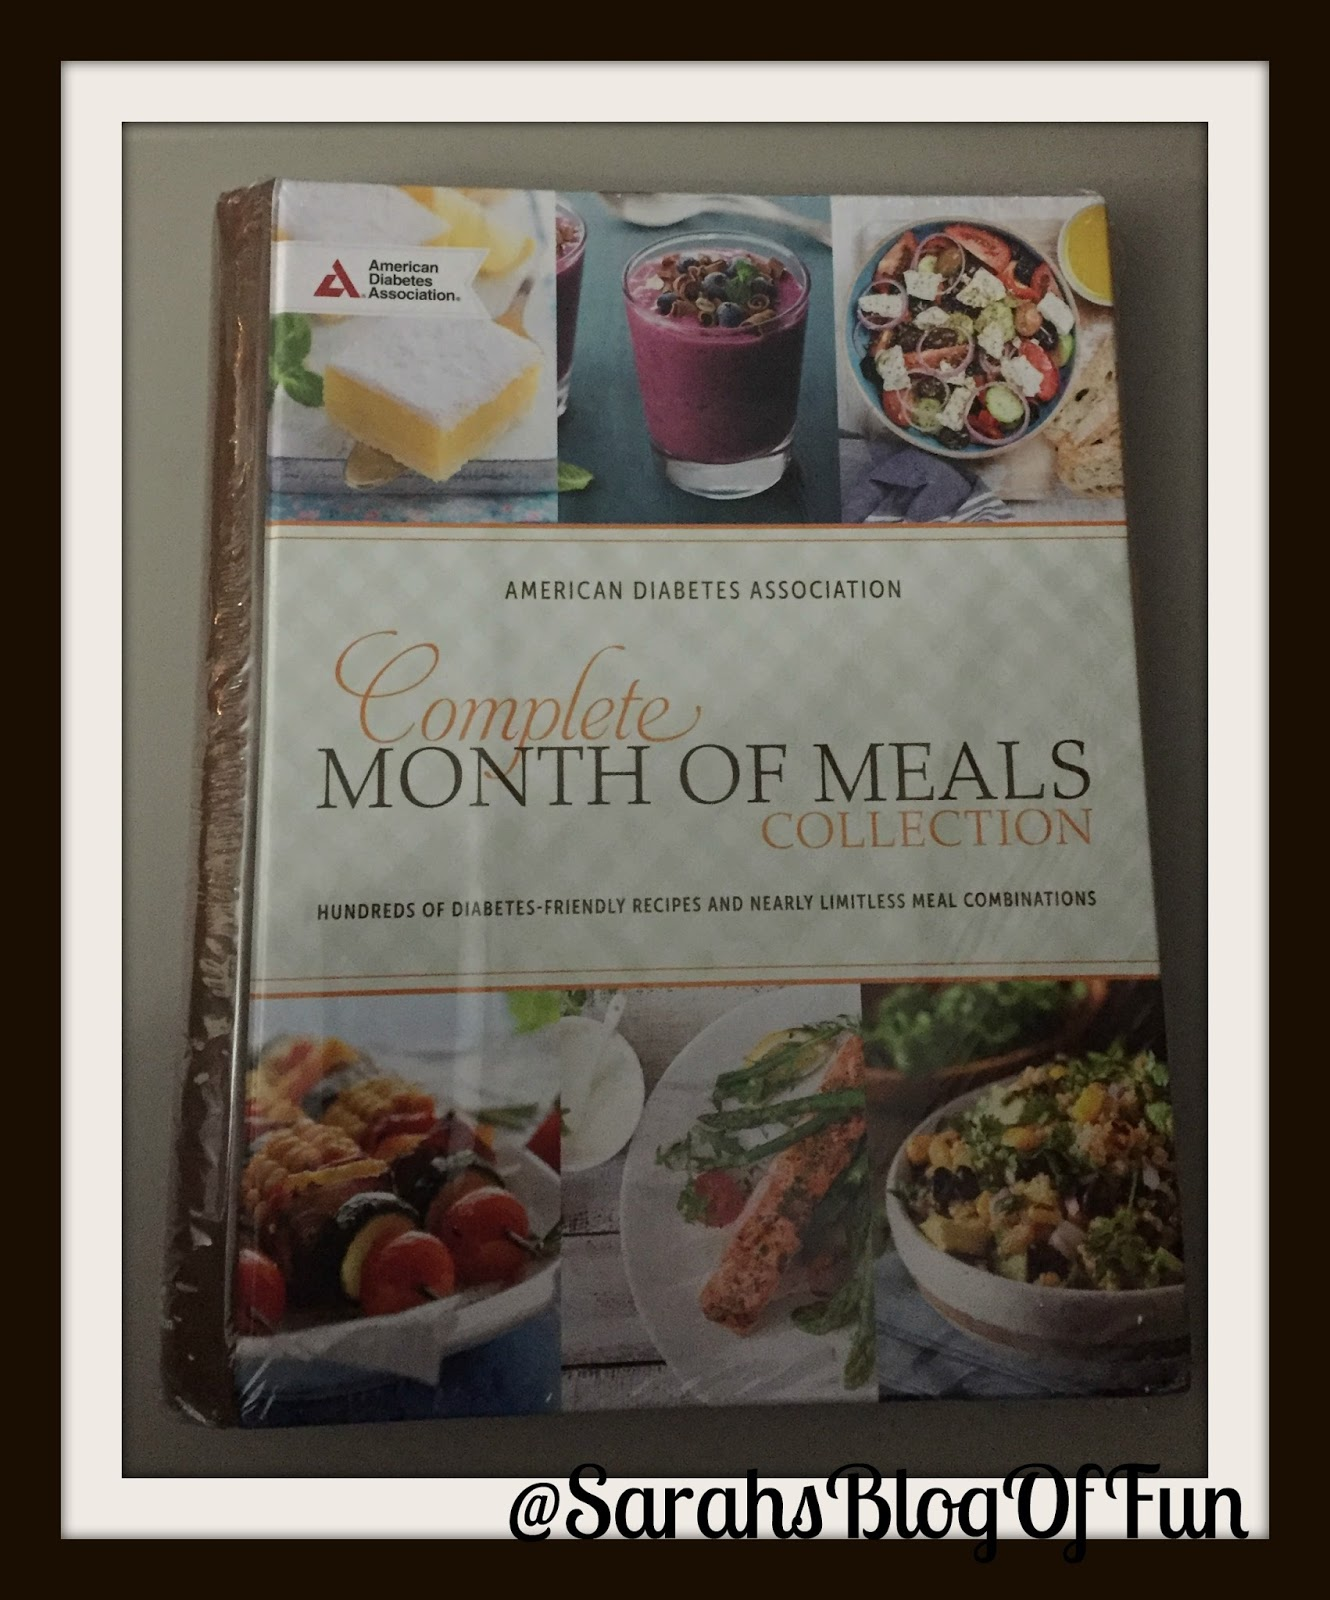 Sarahs blog of fun holiday gift guide the complete month of meals collection is the ultimate cookbook and nutrition guide for people with diabetes containing hundreds of recipes and meal forumfinder Choice Image